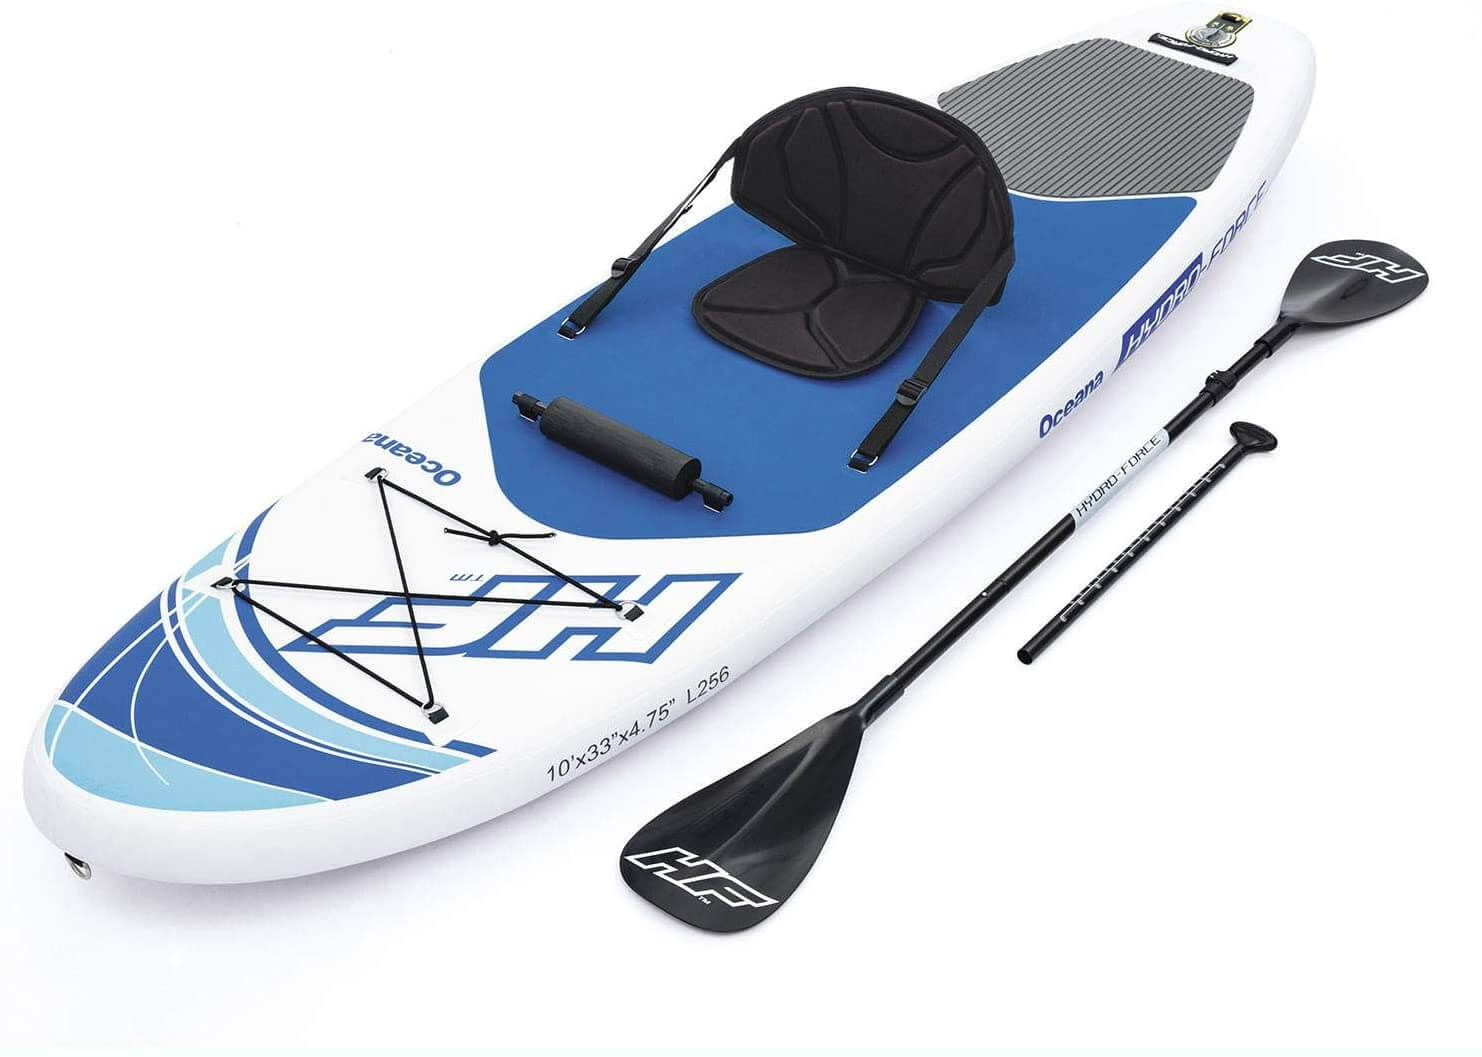 top view of the hydro force sup with kayak seat and paddle